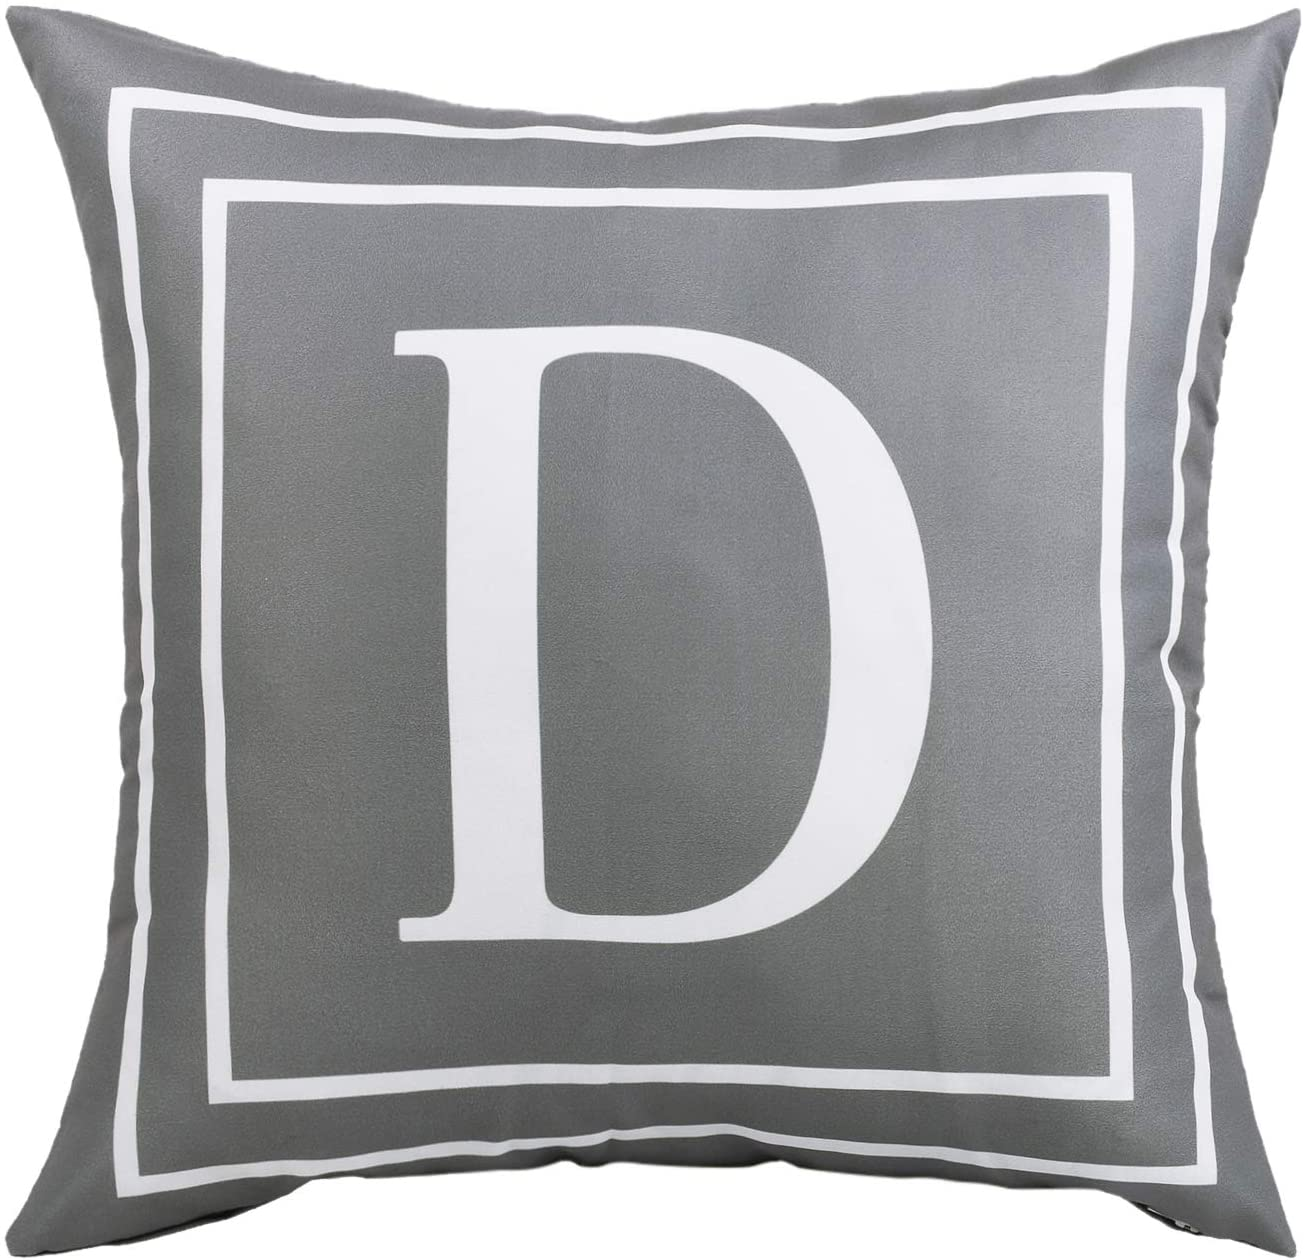 ASPMIZ Throw Pillow Covers English Alphabet D Pillow Covers, Initial Pillowcases Gray Letter Throw Pillow Covers, Decorative Cushion Cover for Bed Bedroom Couch Sofa (Gray, 18 x 18 inch)